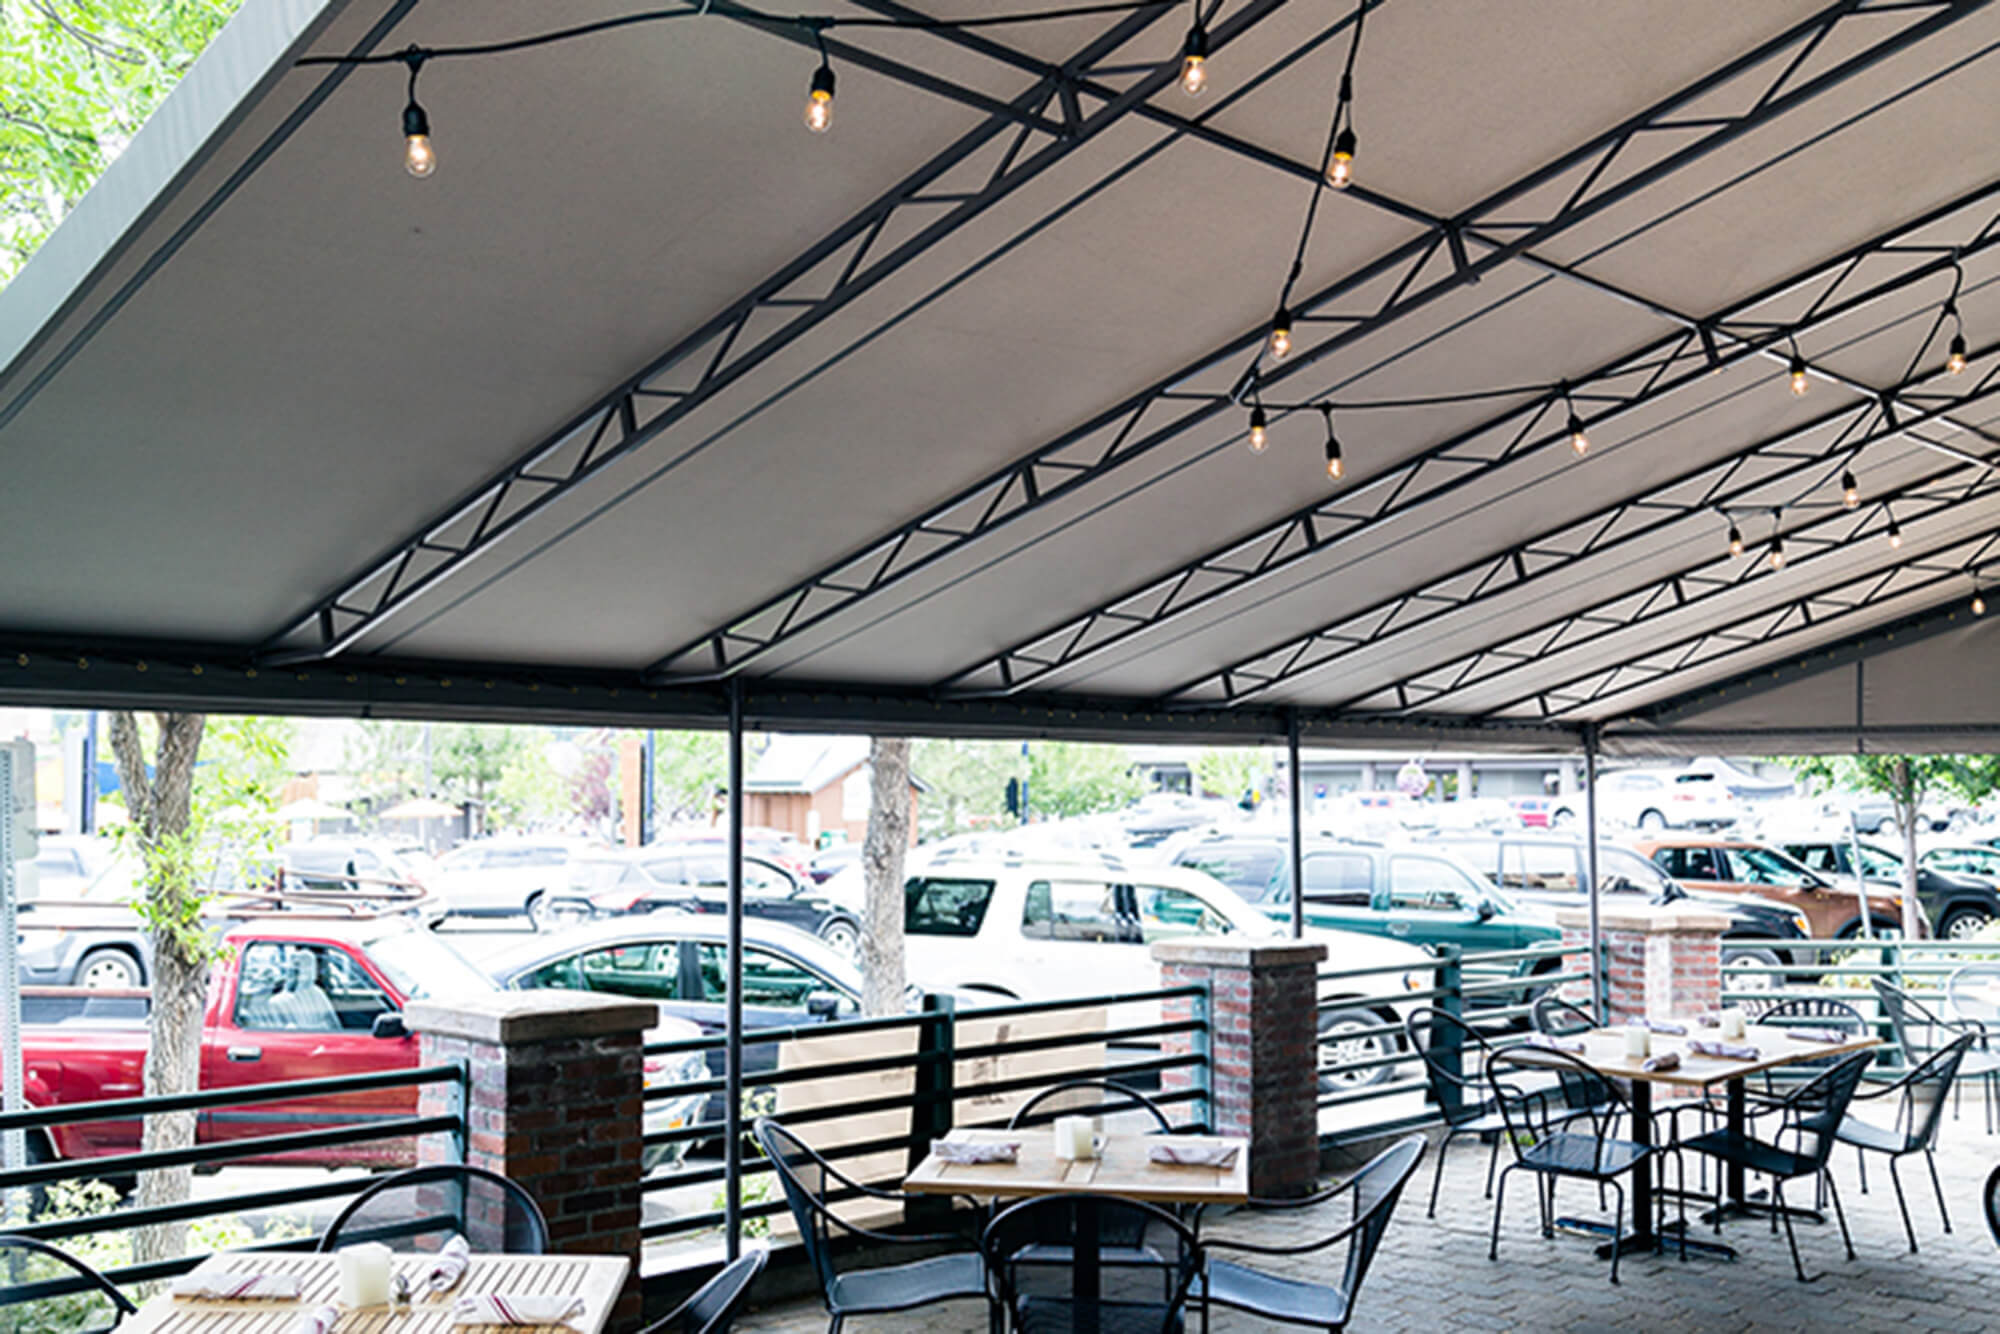 View of underside of awning covering a restaurant patio